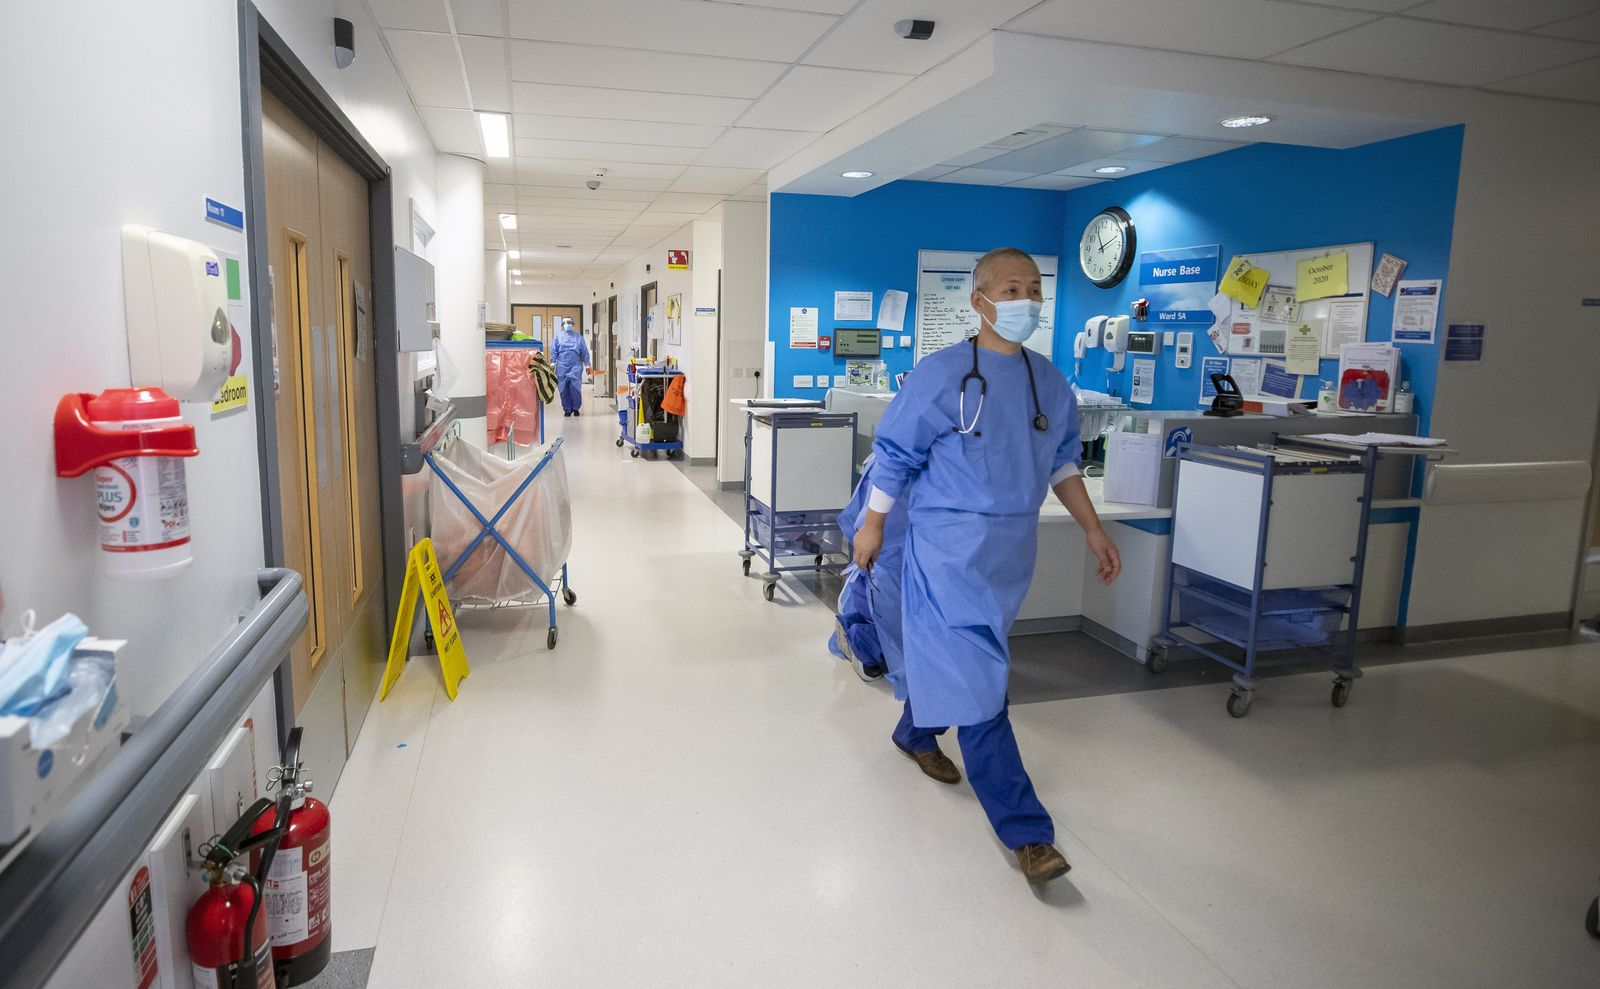 Staff shortages in the NHS